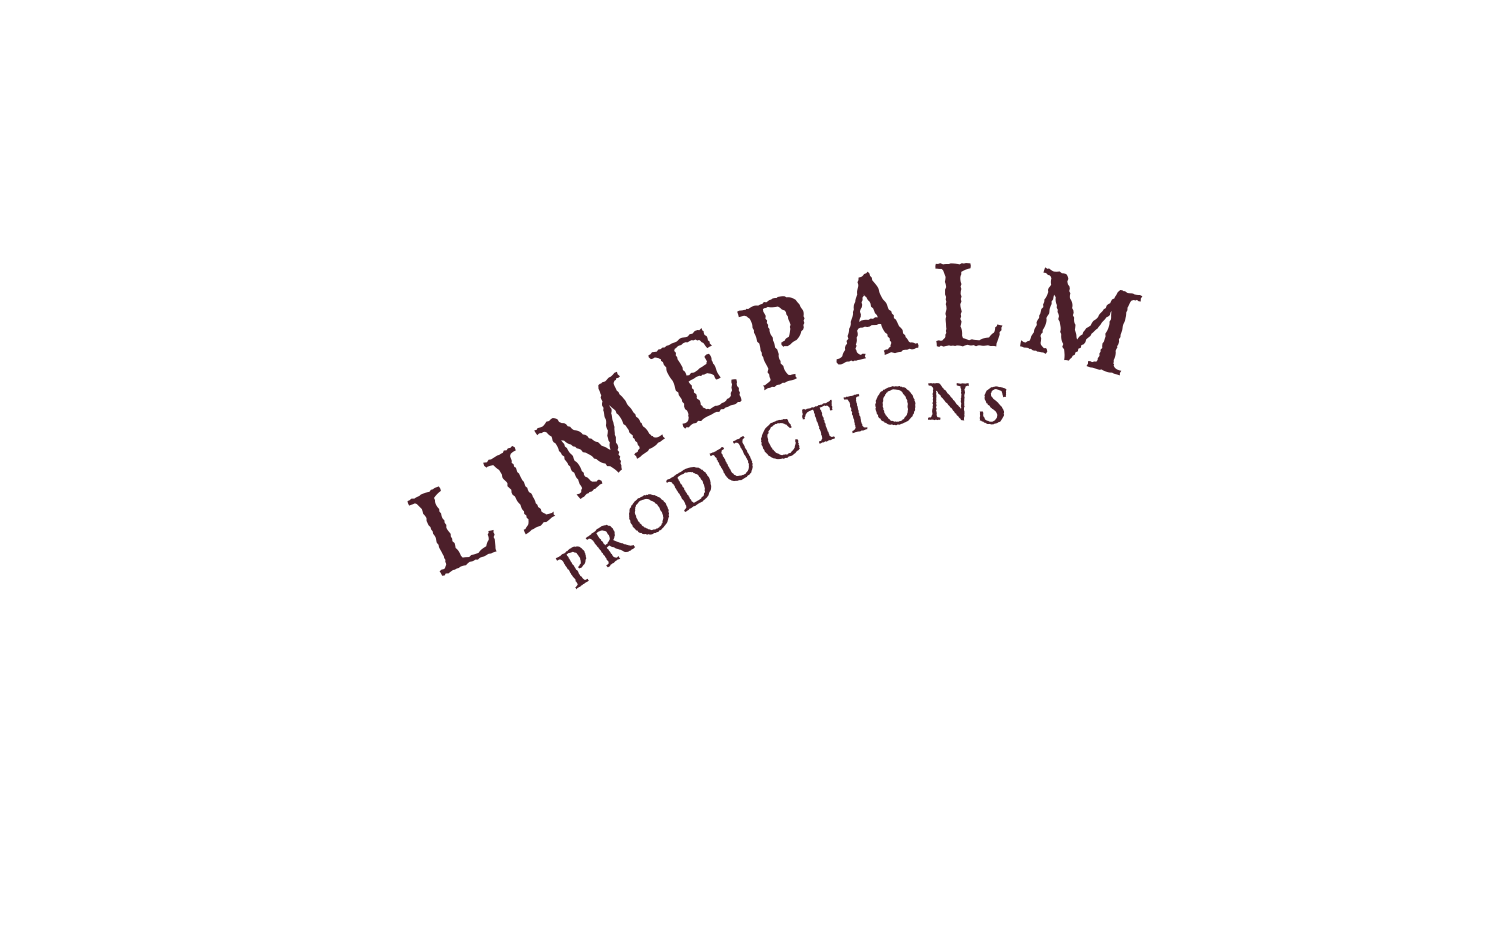 Limepalm Productions